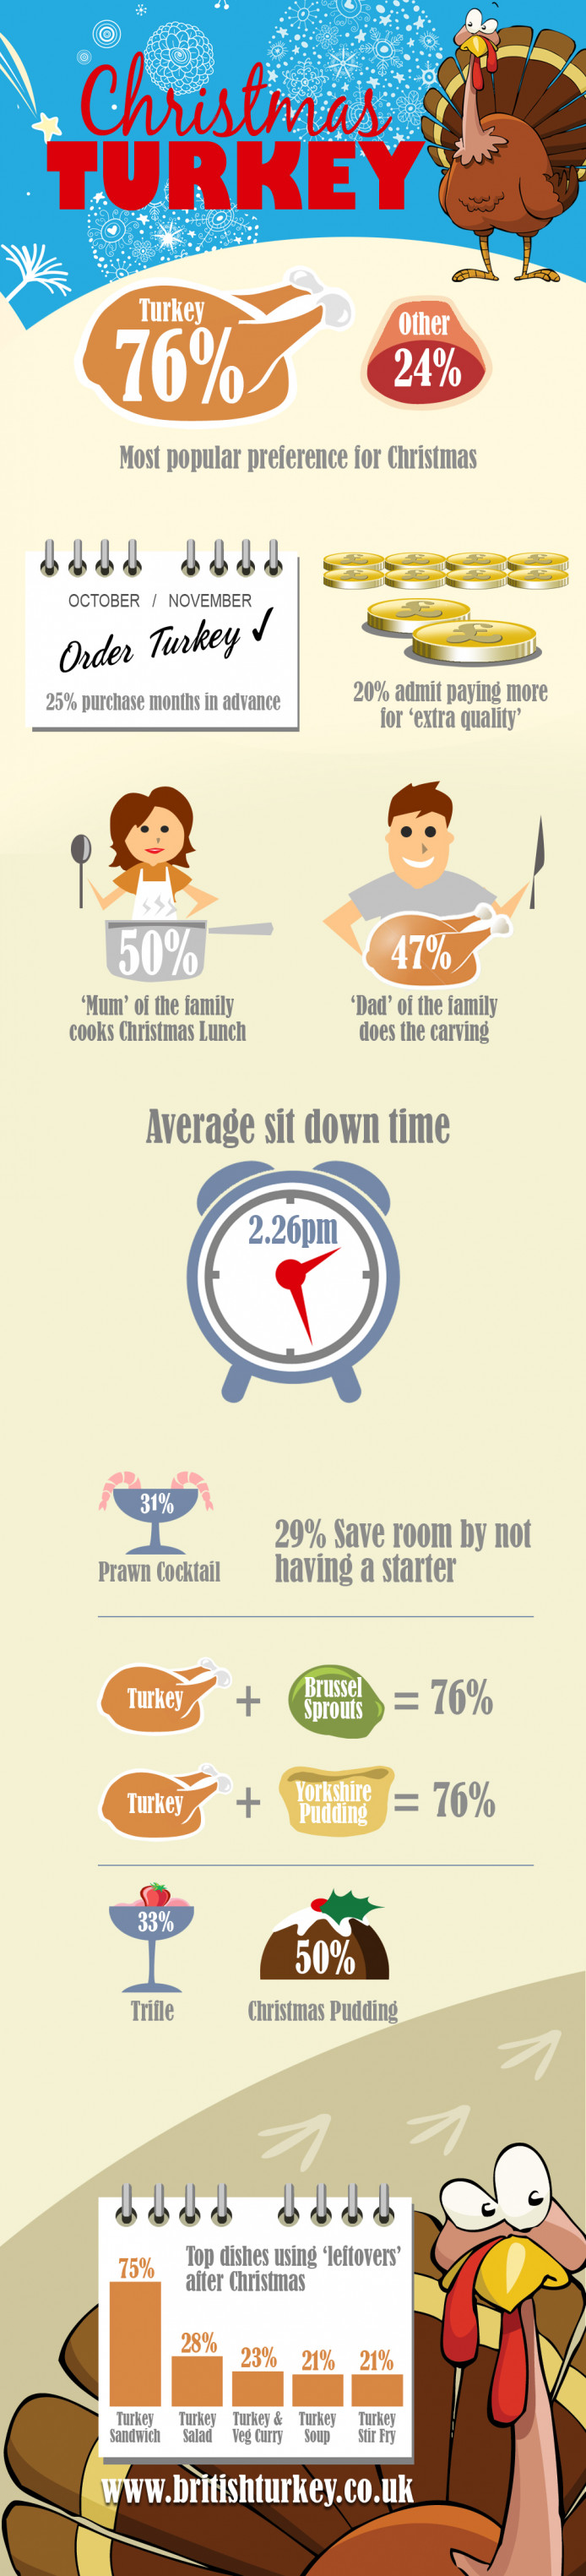 Christmas Turkey Facts